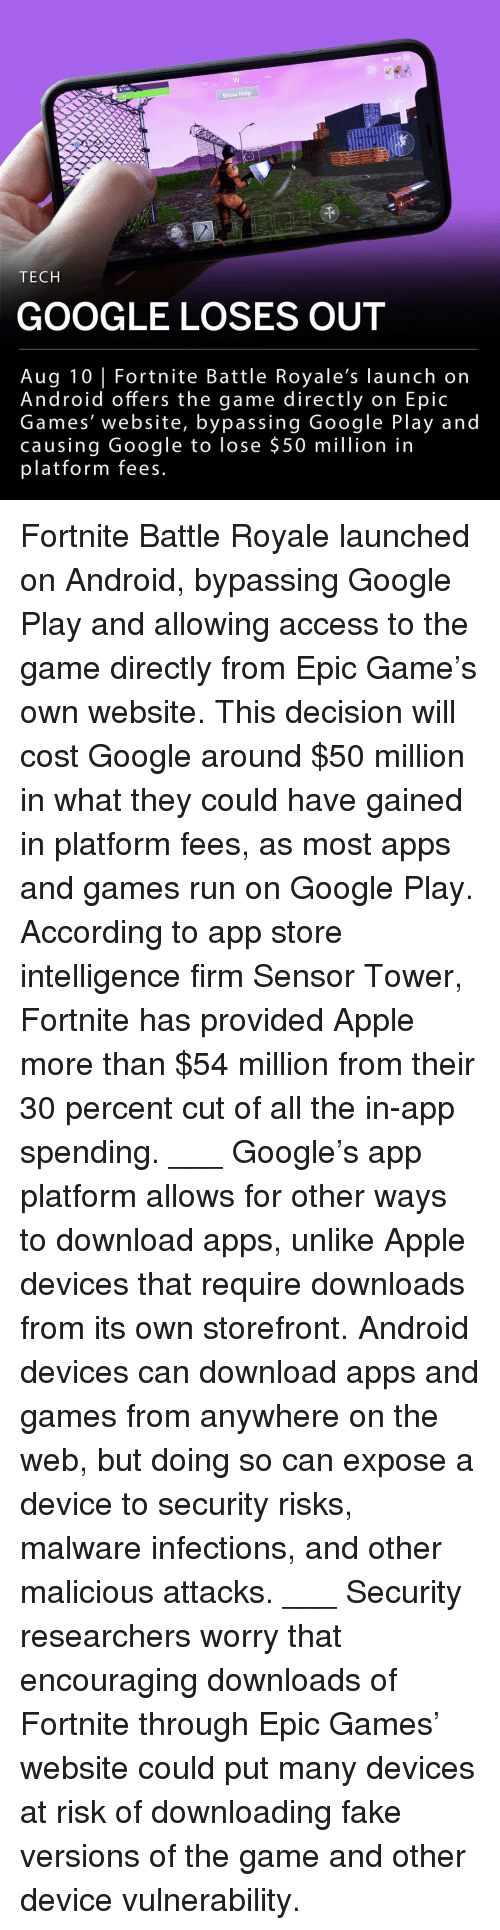 Anaconda, Android, and Apple: 11345  0 100  Show Help  TECH  GOOGLE LOSES OUT  Aug 10 Fortnite Battle Royale's launch on  Android offers the game directly on Epic  Games' website, bypassing Google Play and  causing Google to lose $50 million in  platform fees. Fortnite Battle Royale launched on Android, bypassing Google Play and allowing access to the game directly from Epic Game's own website. This decision will cost Google around $50 million in what they could have gained in platform fees, as most apps and games run on Google Play. According to app store intelligence firm Sensor Tower, Fortnite has provided Apple more than $54 million from their 30 percent cut of all the in-app spending. ___ Google's app platform allows for other ways to download apps, unlike Apple devices that require downloads from its own storefront. Android devices can download apps and games from anywhere on the web, but doing so can expose a device to security risks, malware infections, and other malicious attacks. ___ Security researchers worry that encouraging downloads of Fortnite through Epic Games' website could put many devices at risk of downloading fake versions of the game and other device vulnerability.